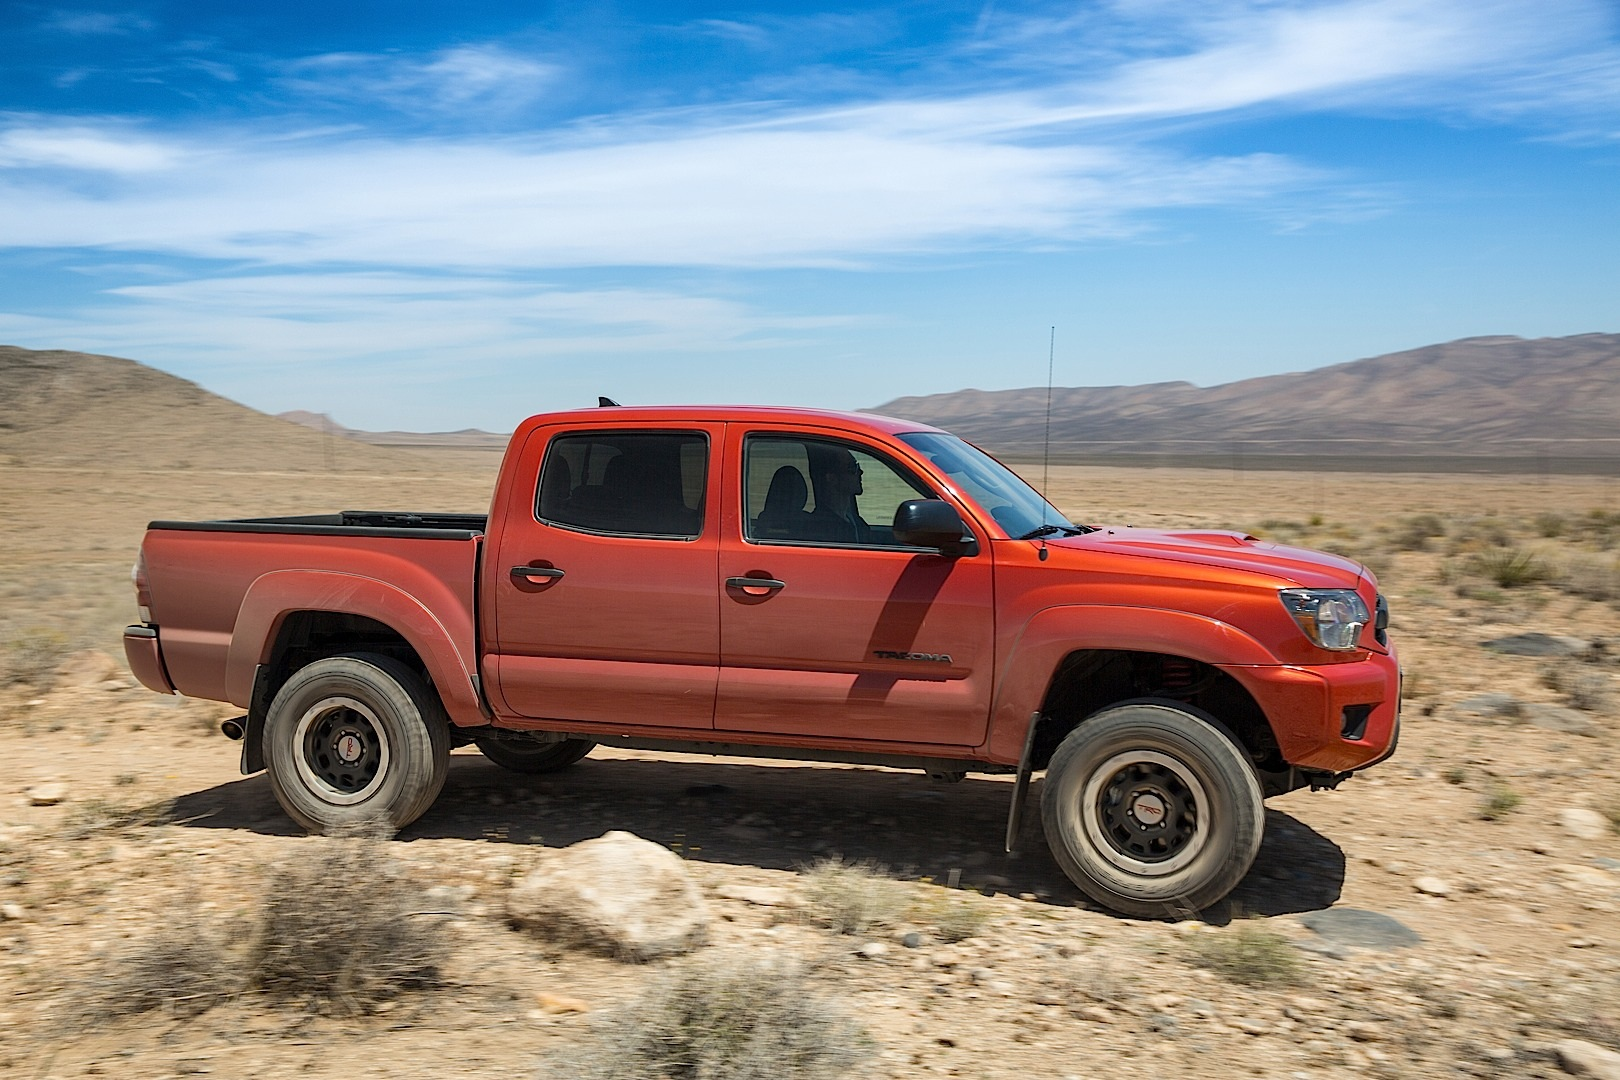 How Wide Is A Midsize Size Truck Bed